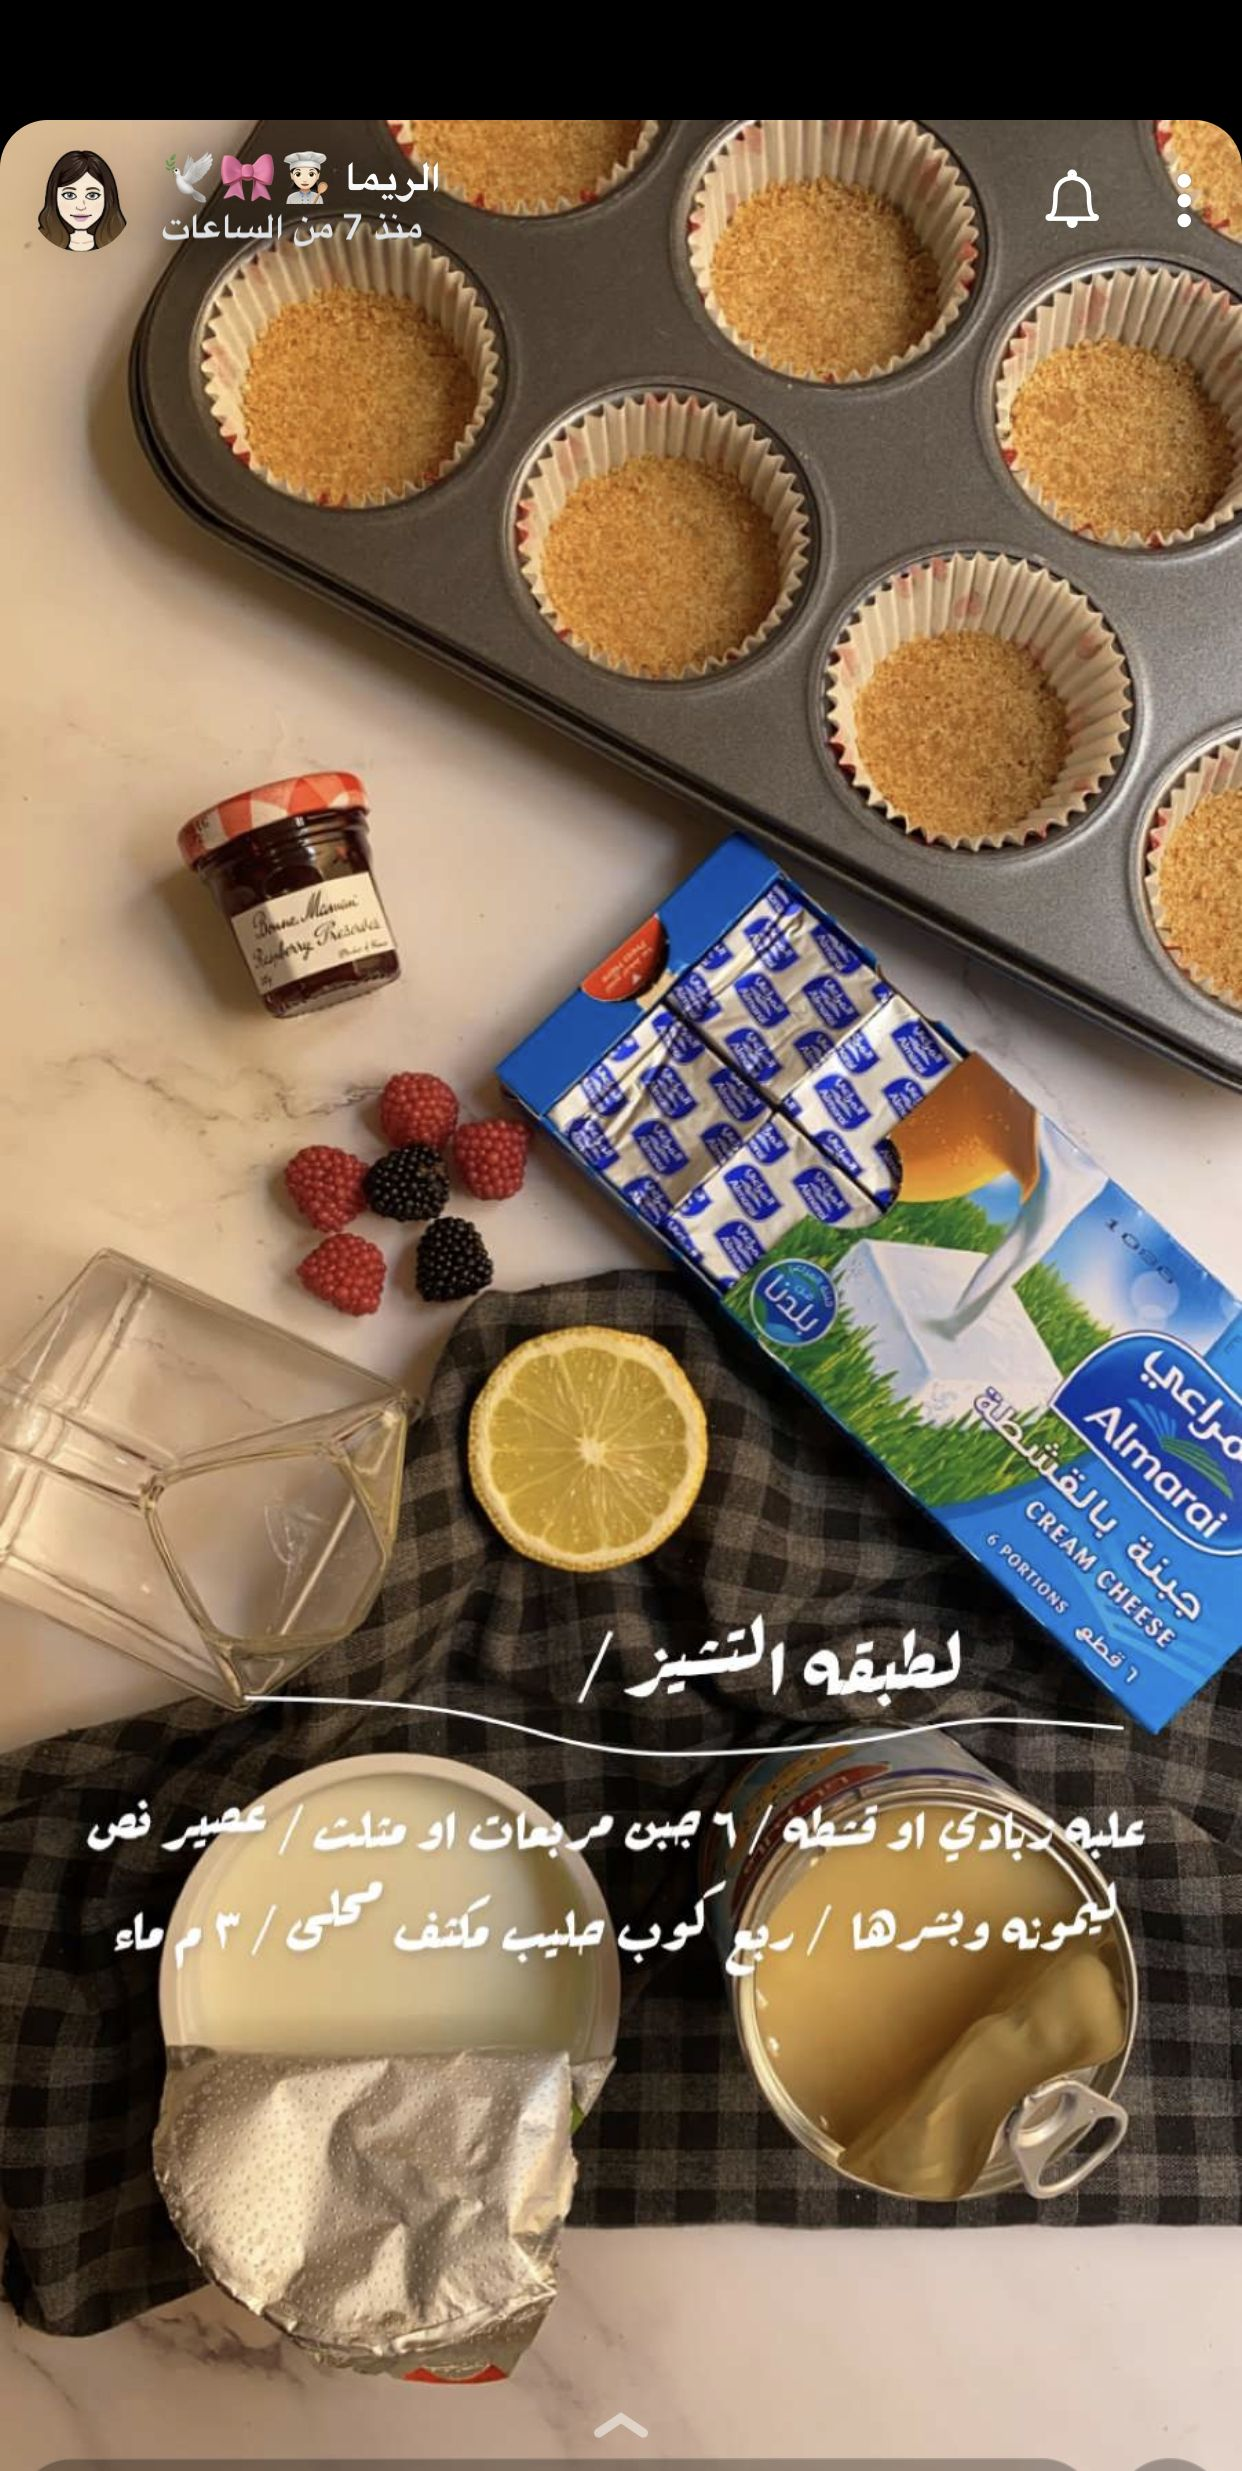 Pin By Nane On Cake In 2021 Diy Food Recipes Food Receipes Sweets Recipes